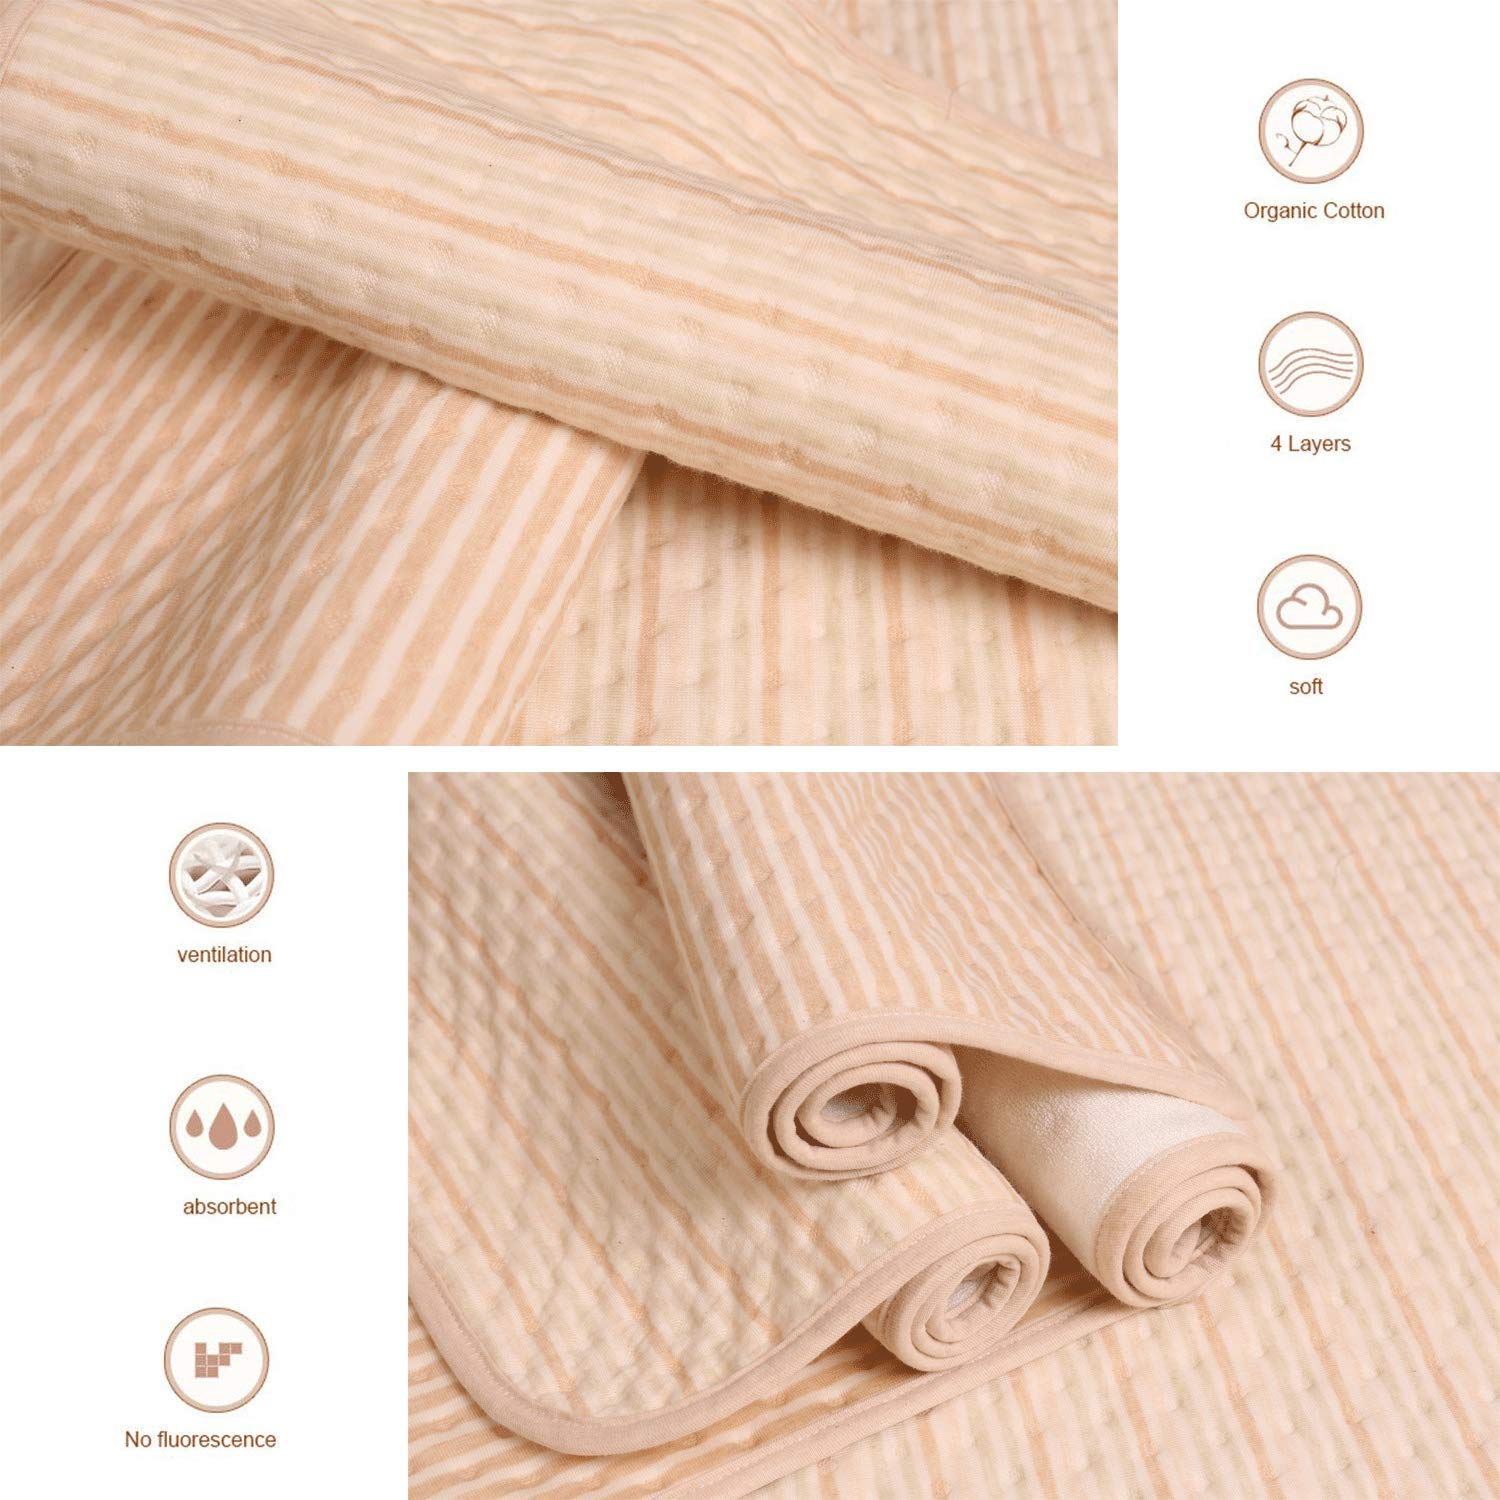 LvLoFit 4 Layers Water Absorbent Dry Night Bed Sheet Mat Breathable Cotton Bamboo Fiber Changing Pad Incontinence Mattress for Baby Kids Adult 47x27inches